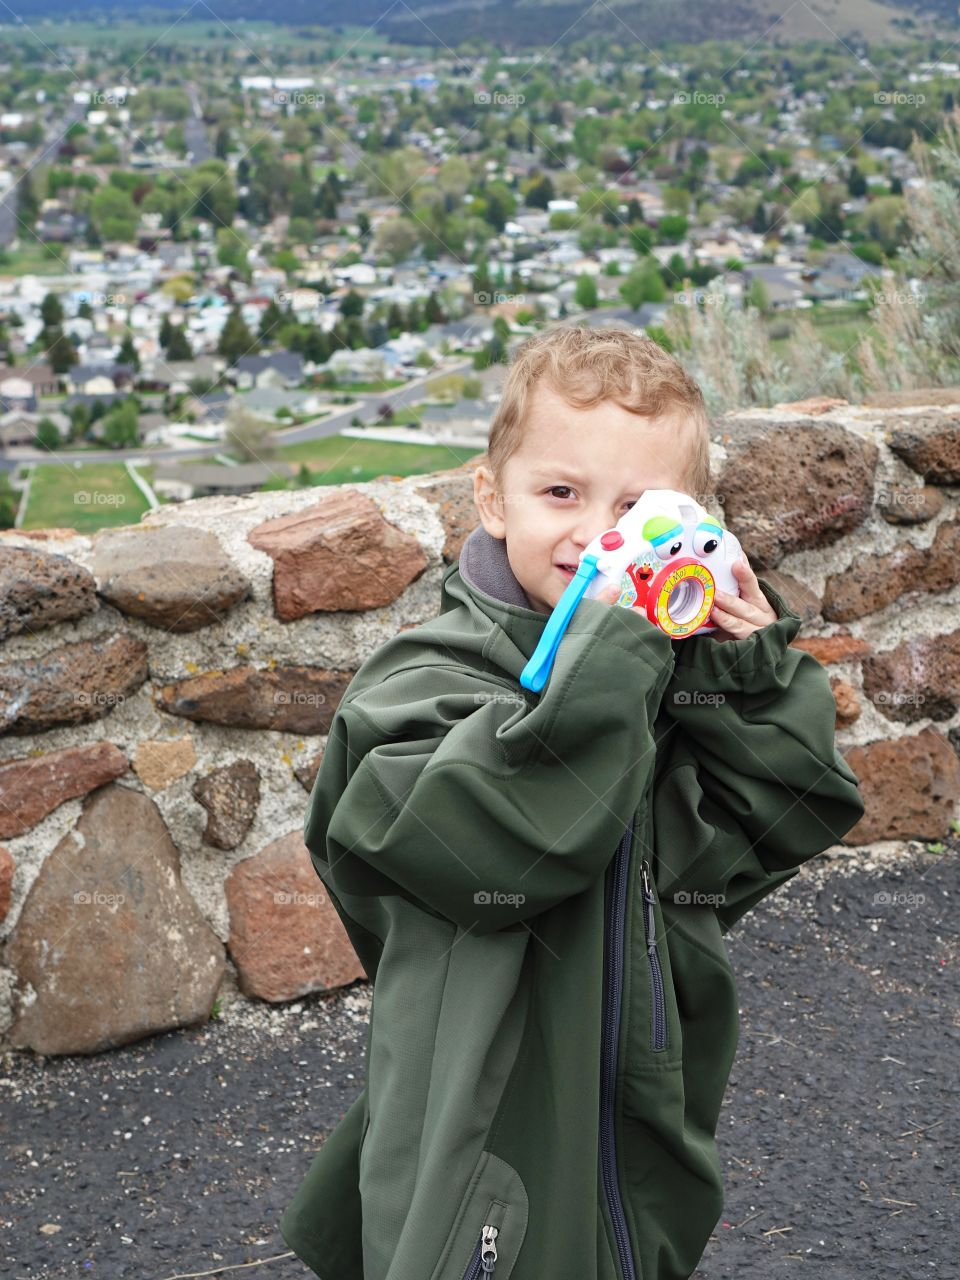 A cute young boy in an adult jacket that hangs to the ground takes a photo with his toy camera.